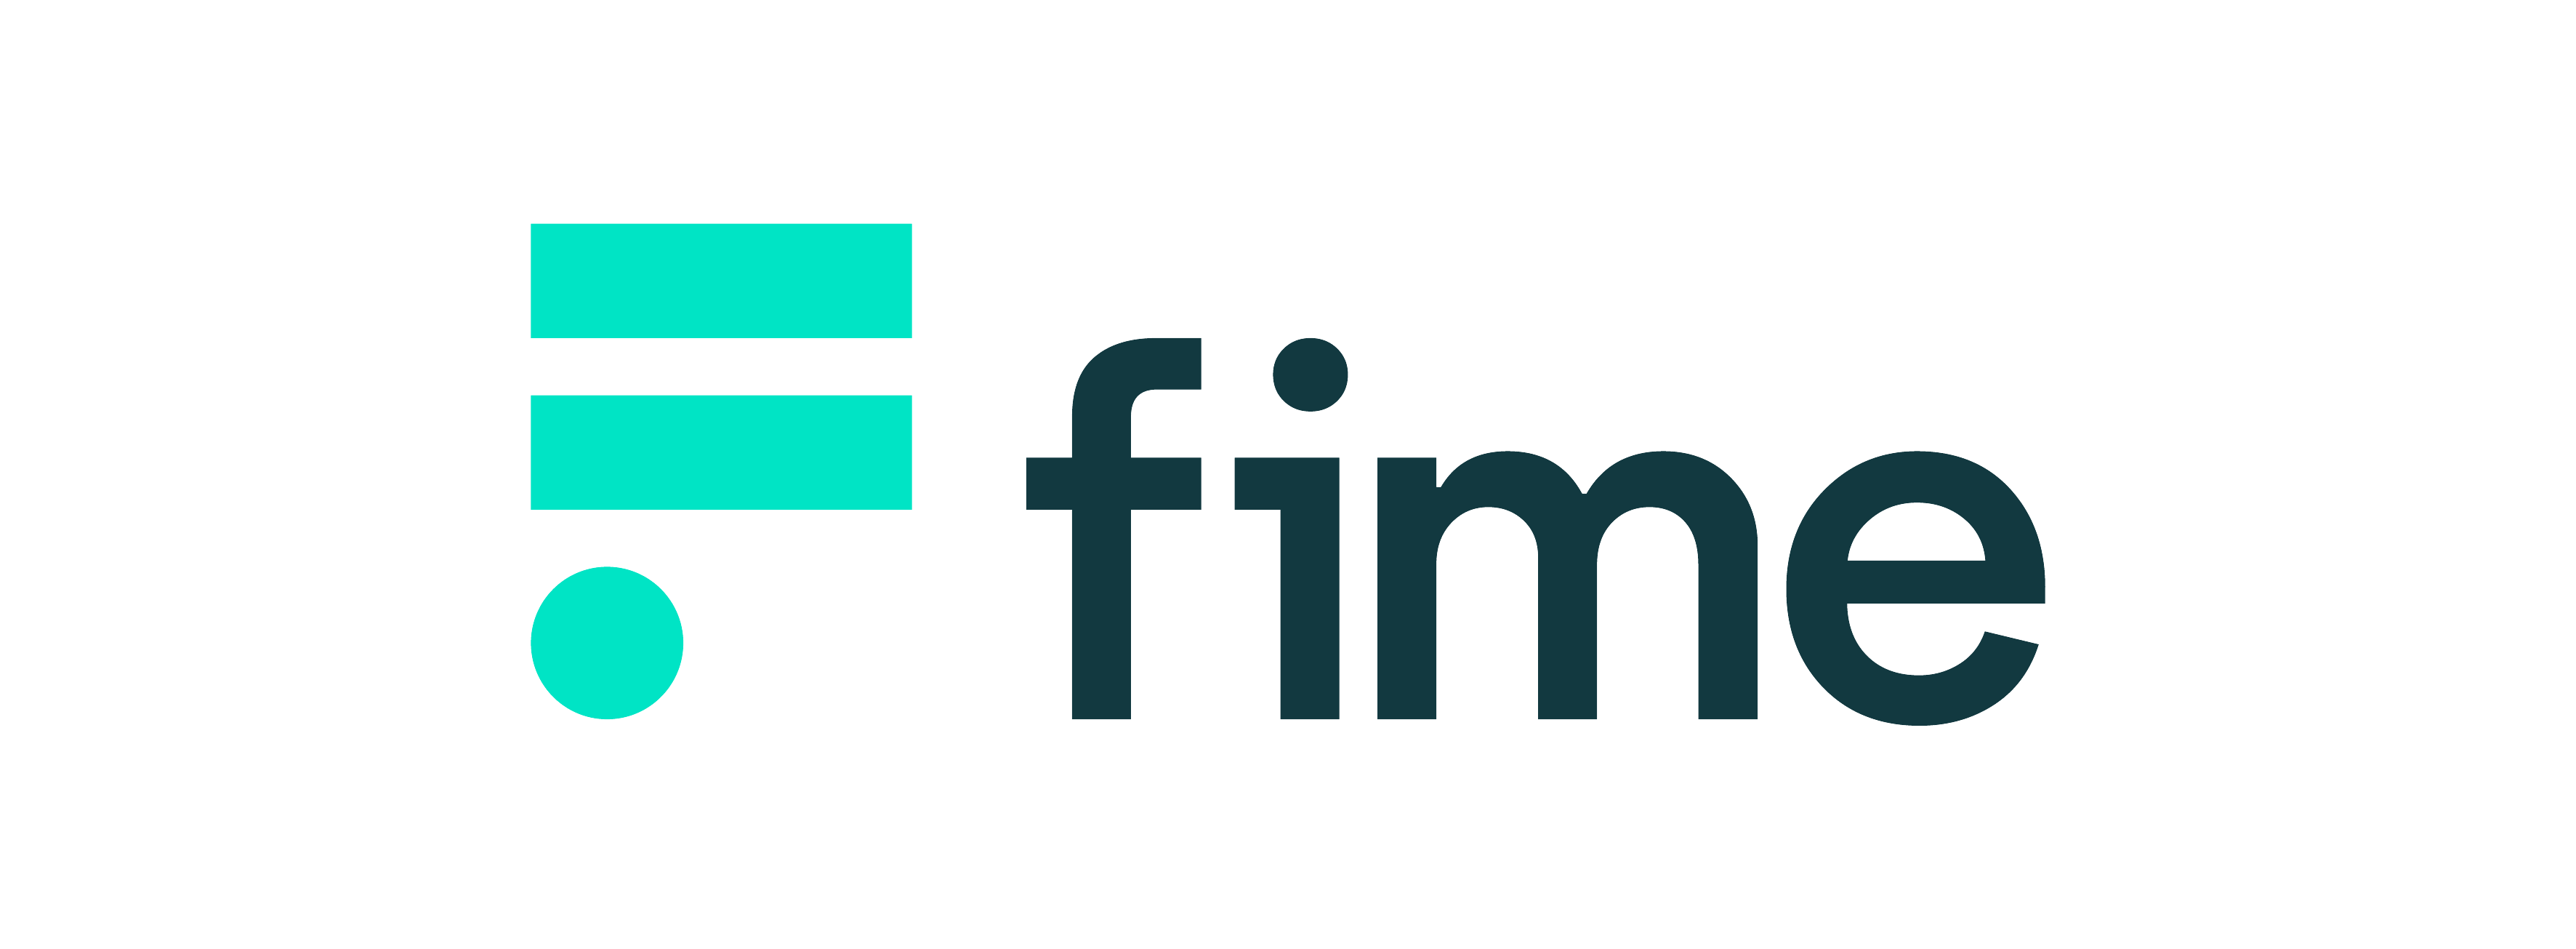 Fime to Enable Remote Card & Mobile App Testing with Cloud-Based Tool